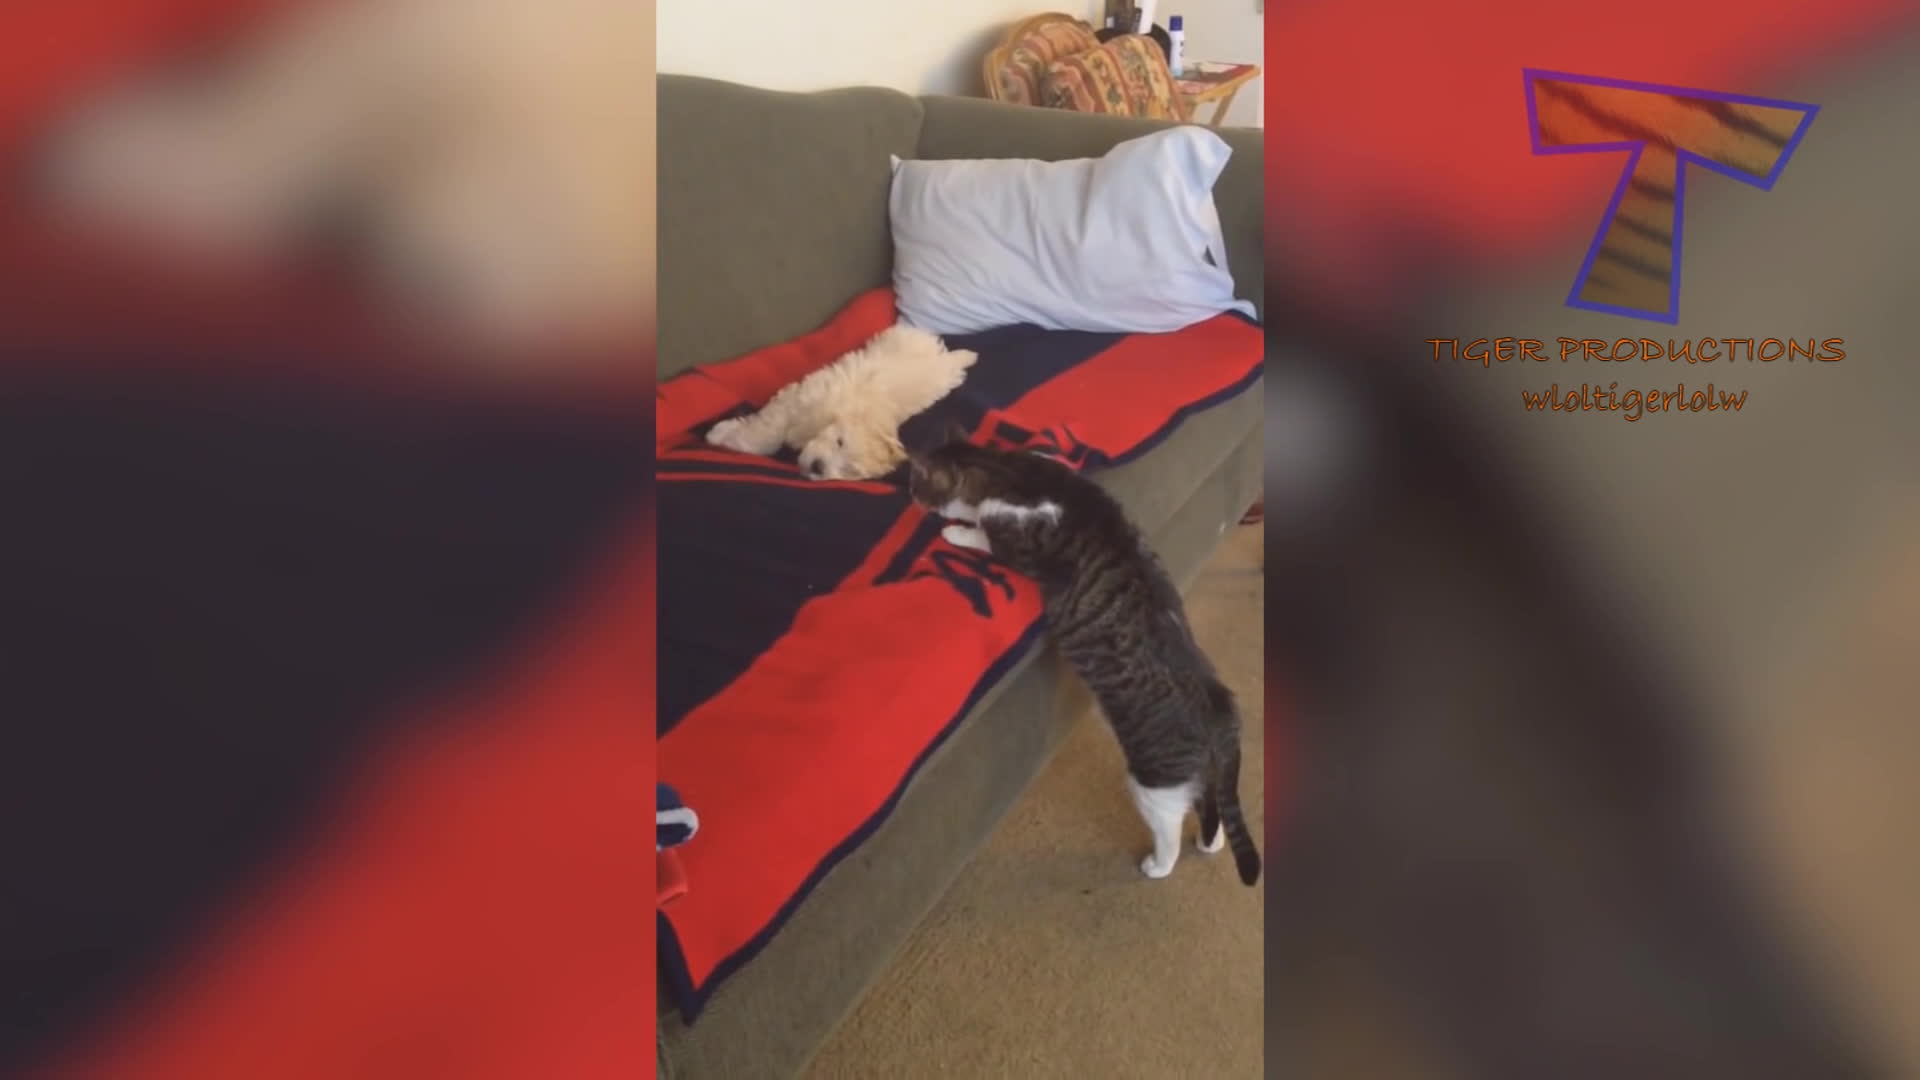 cats vs dogs, cattaps, dog cat battle, IF YOU LAUGH YOU LOSE CHALLENGE - Cats & Dogs - Who is the funniest to you? GIFs